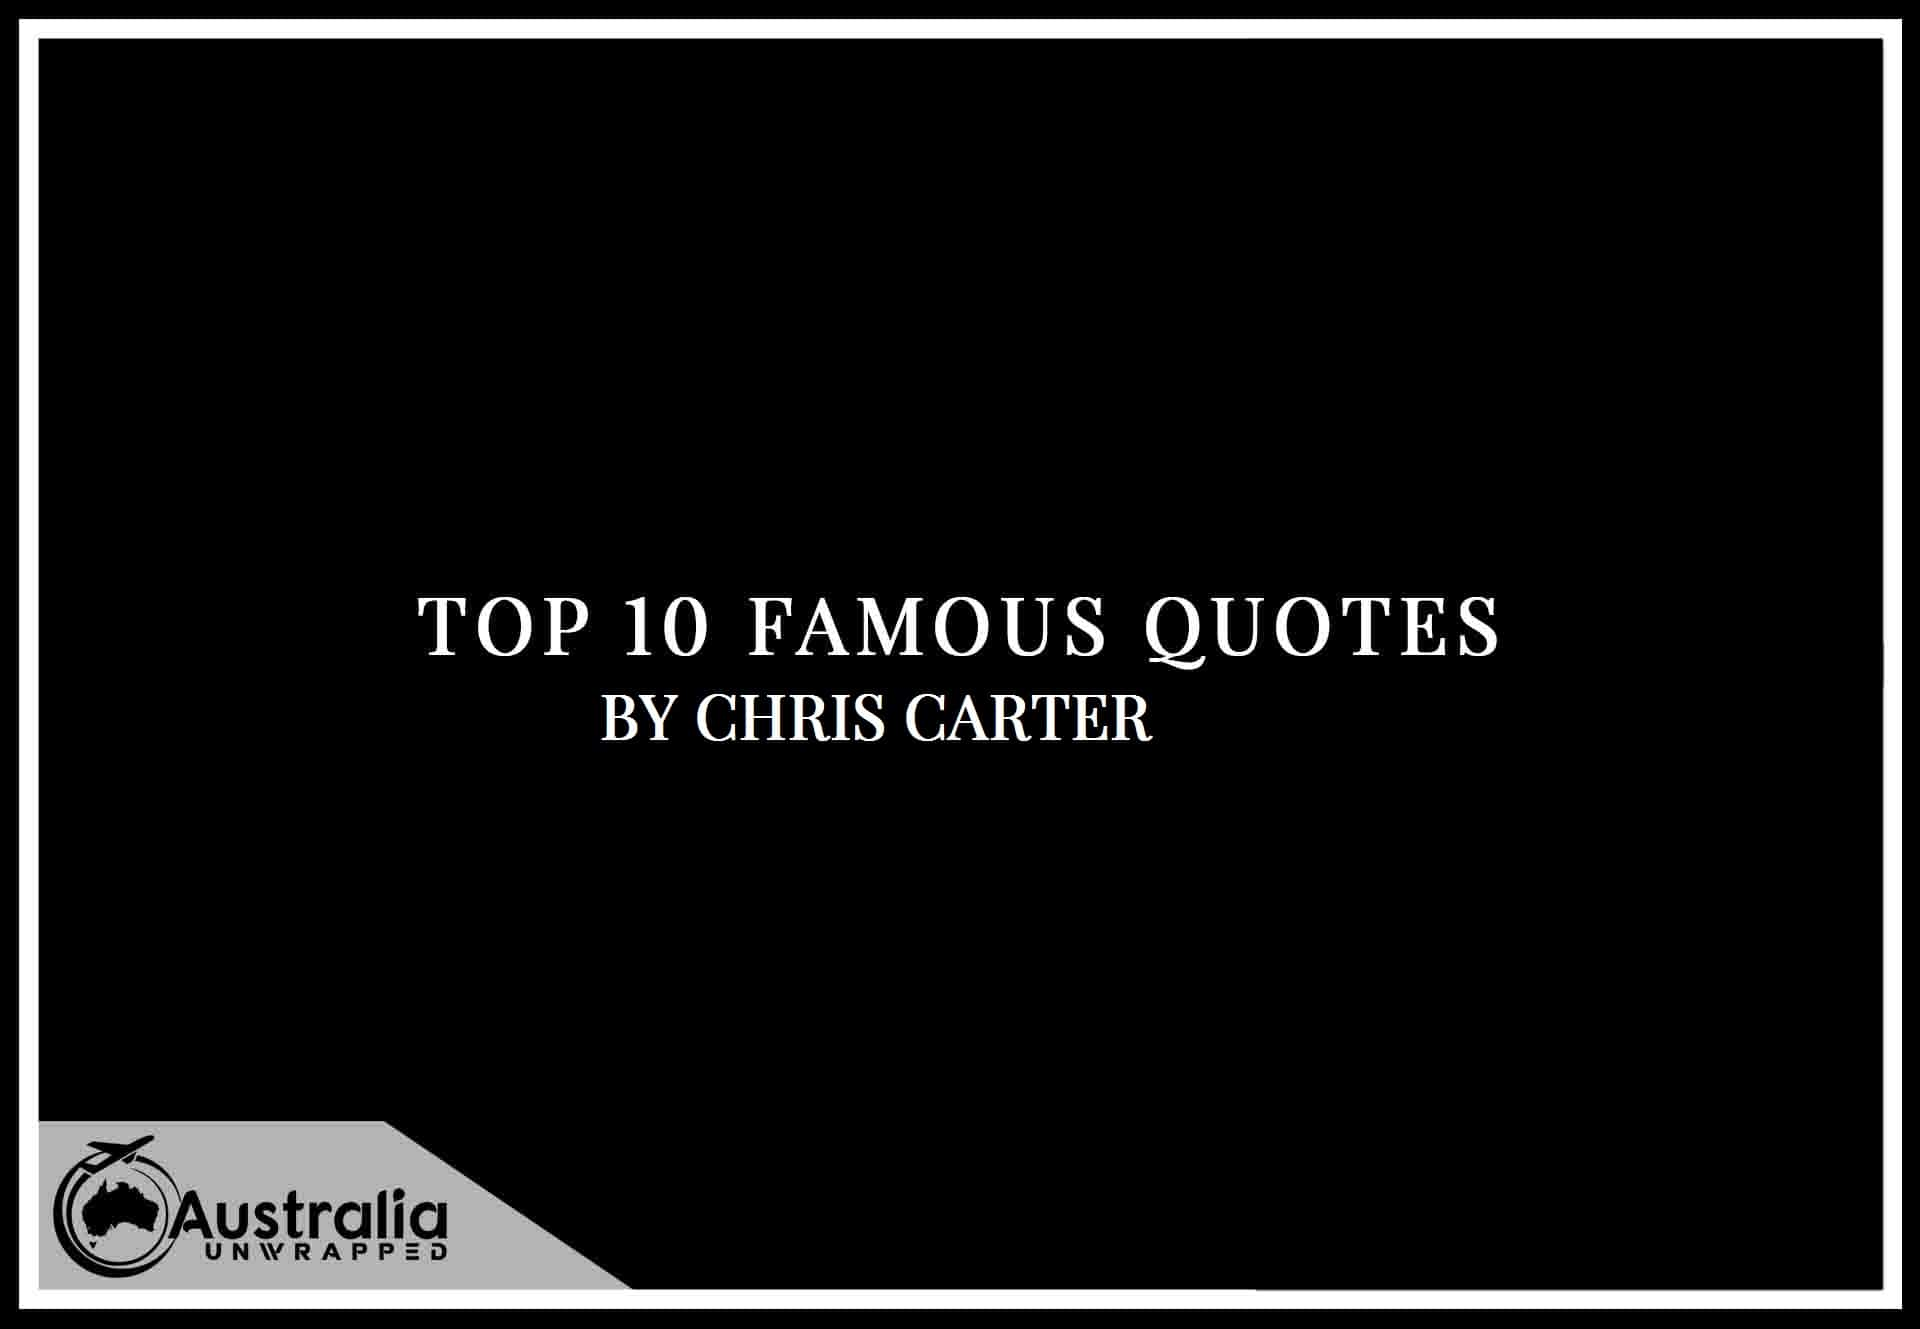 Chris Carter's Top 10 Popular and Famous Quotes